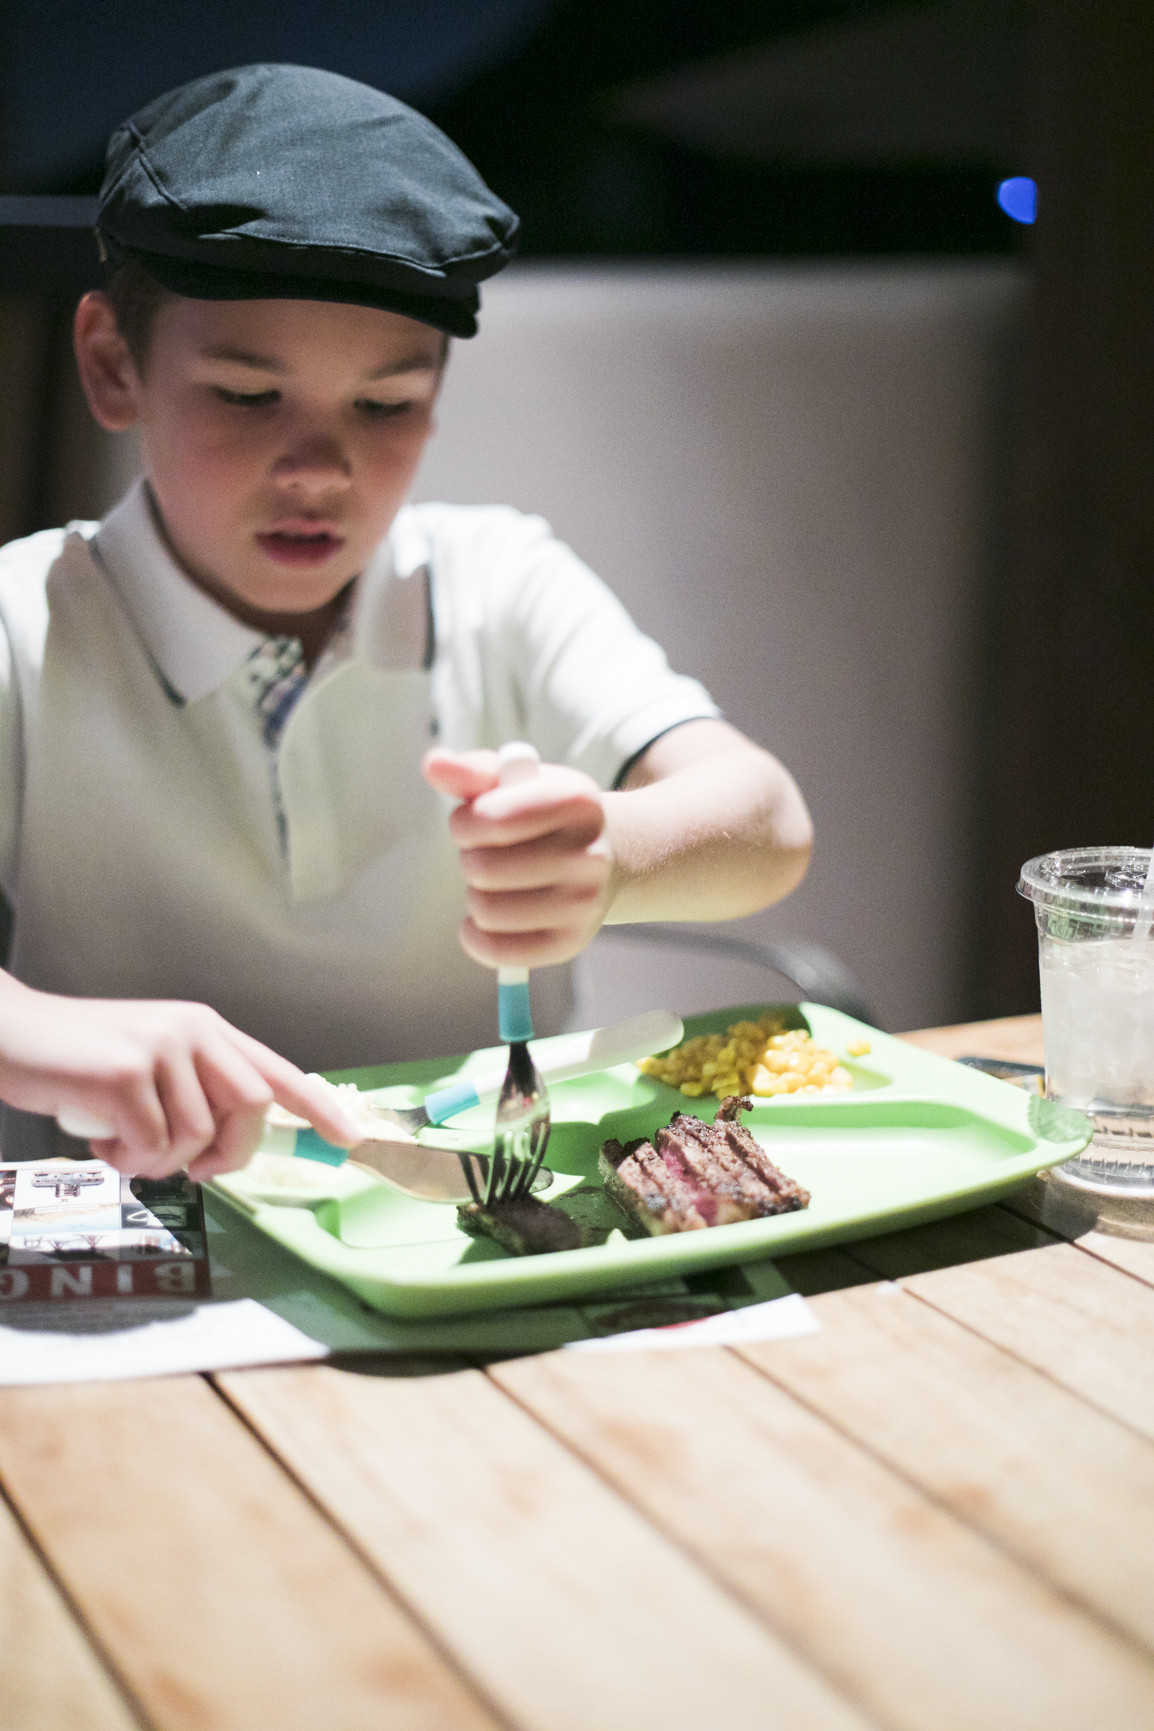 Kids Meals at Proof Canteen Four Season Resort Scottsdale